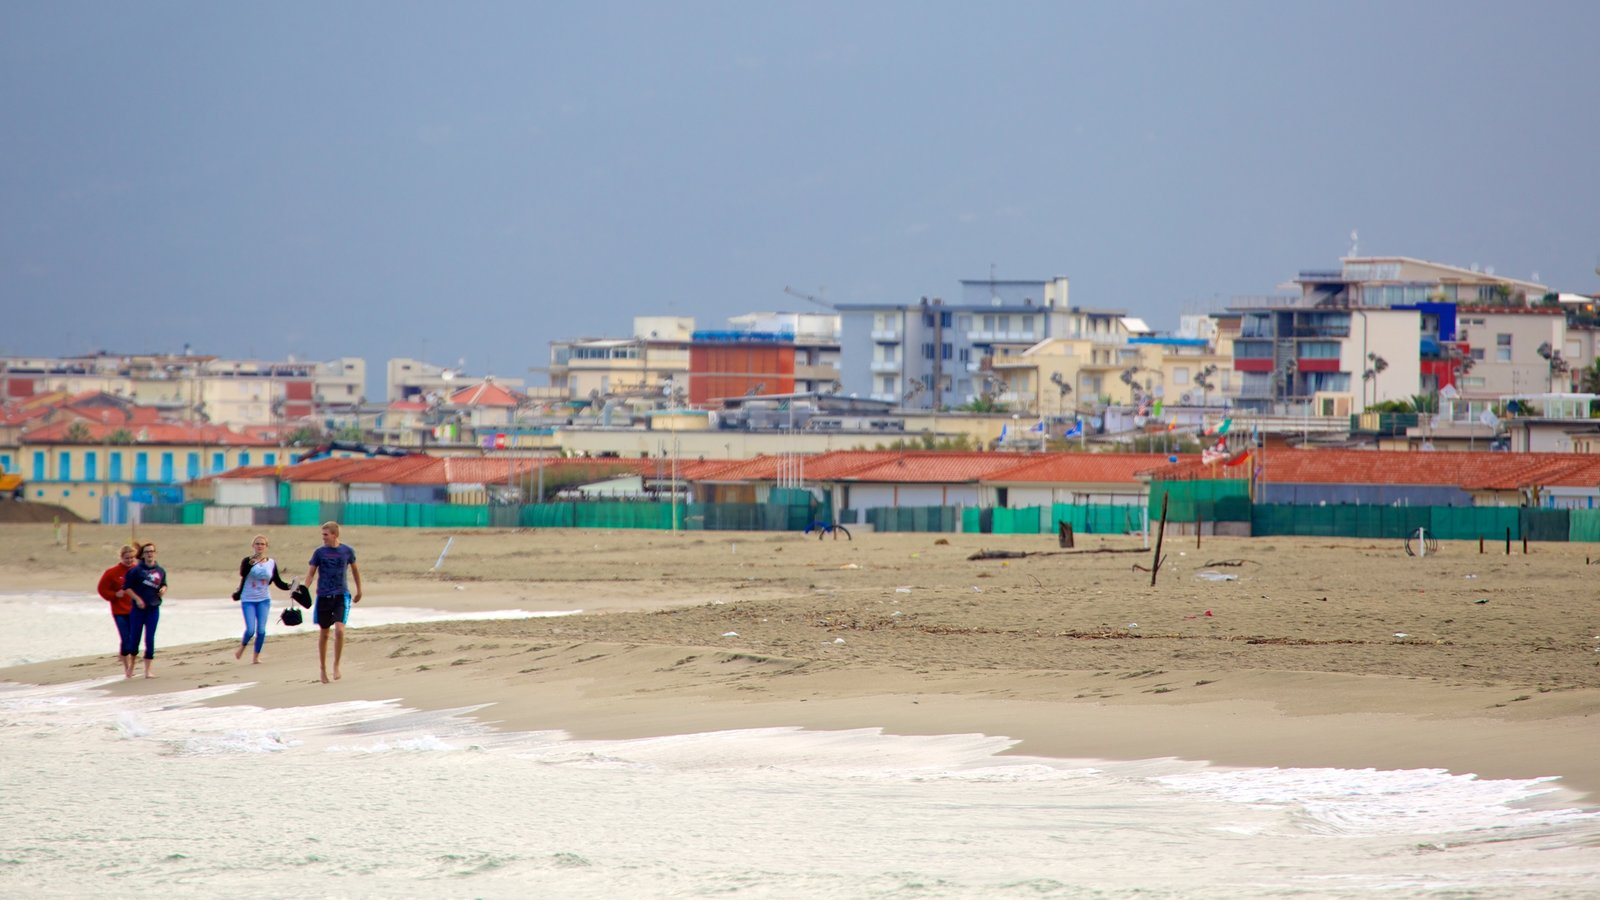 Viareggio featuring a coastal town and a sandy beach as well as a small group of people